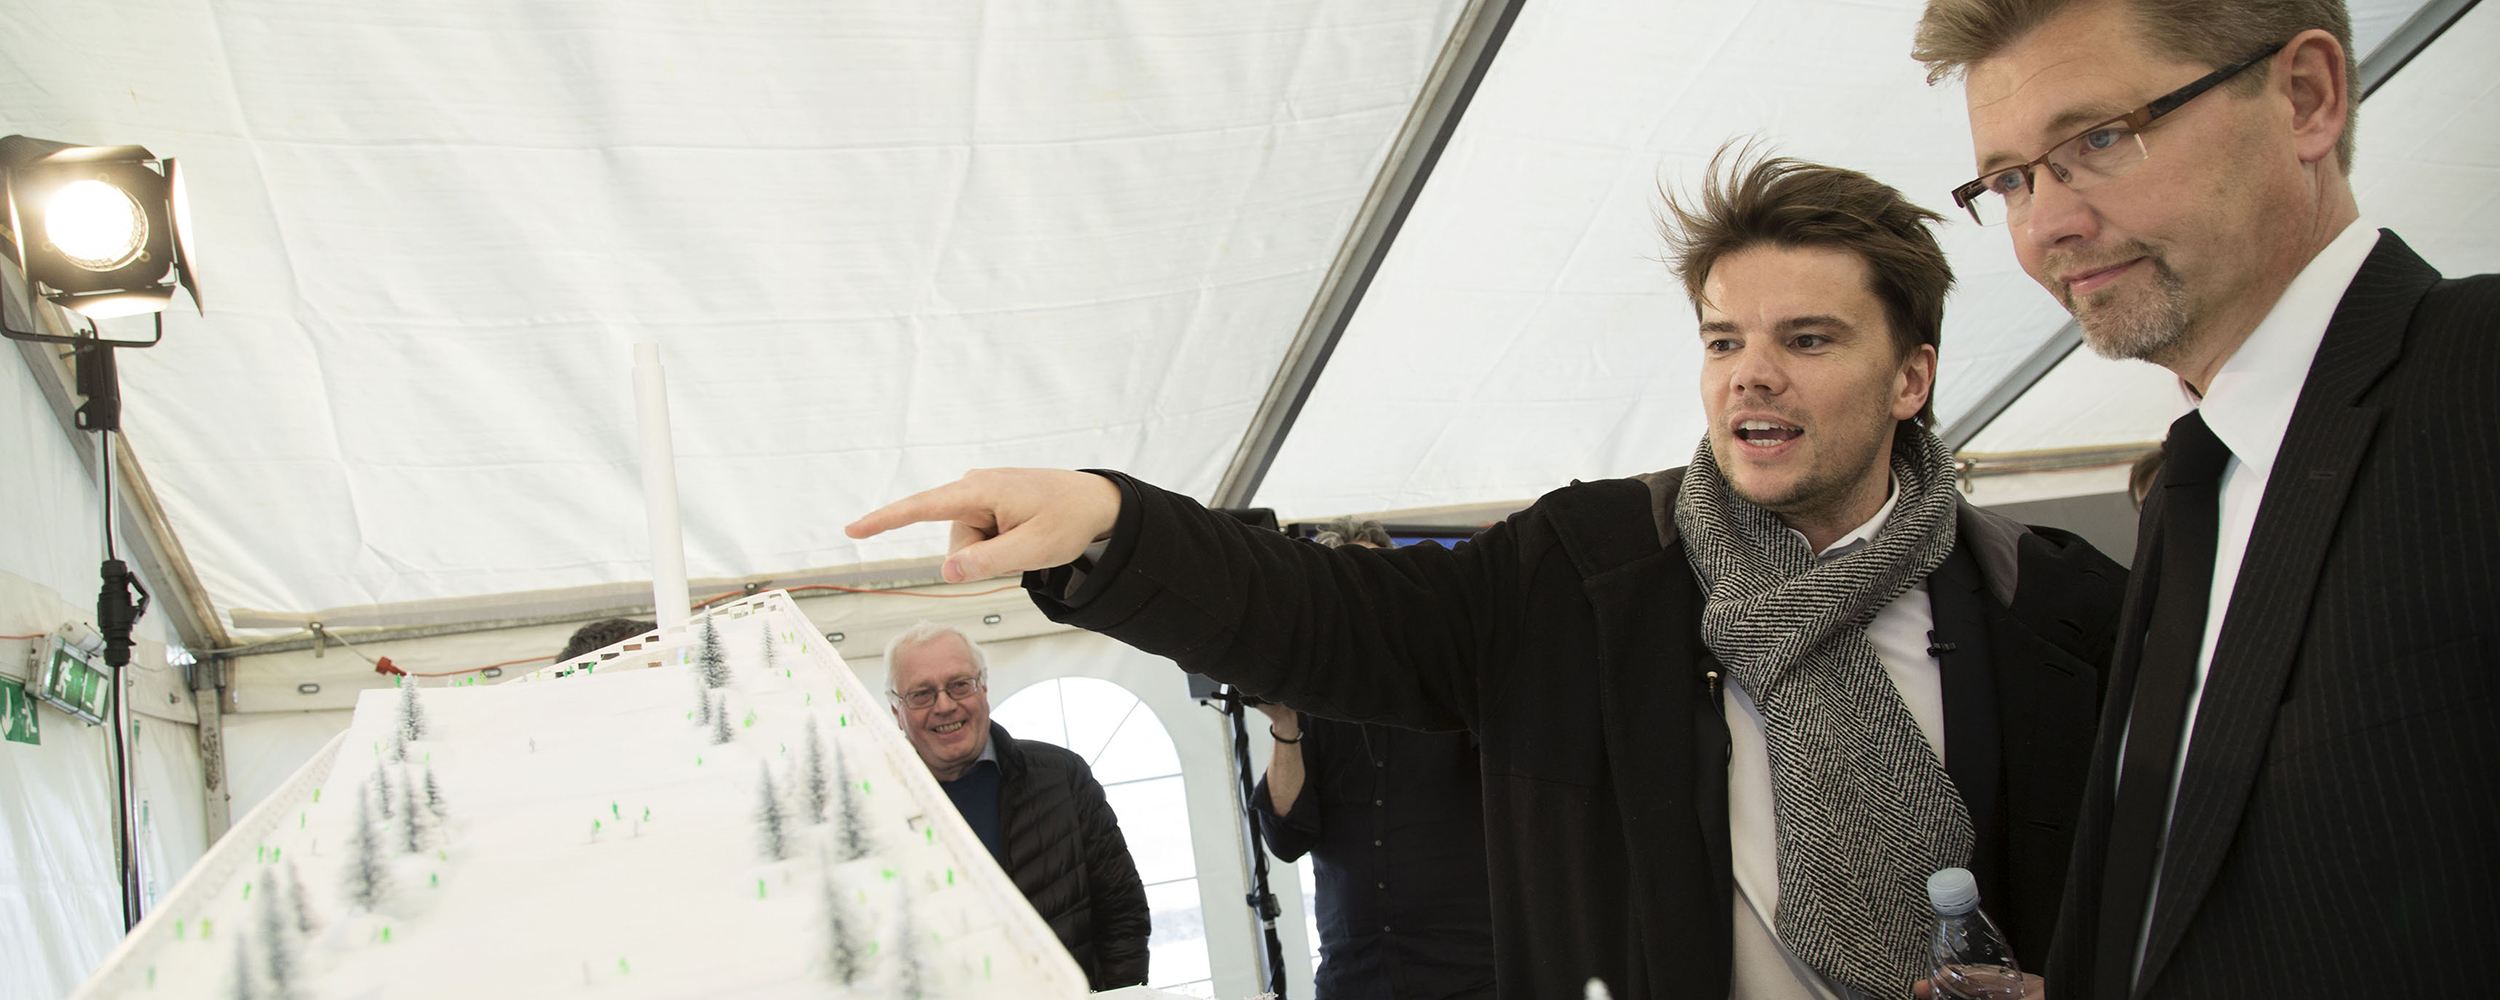 Bjarke Ingels, founder of BIG with Frank Jensen, Lord Mayor of Copenhagen. Photo: Christoffer Regild.